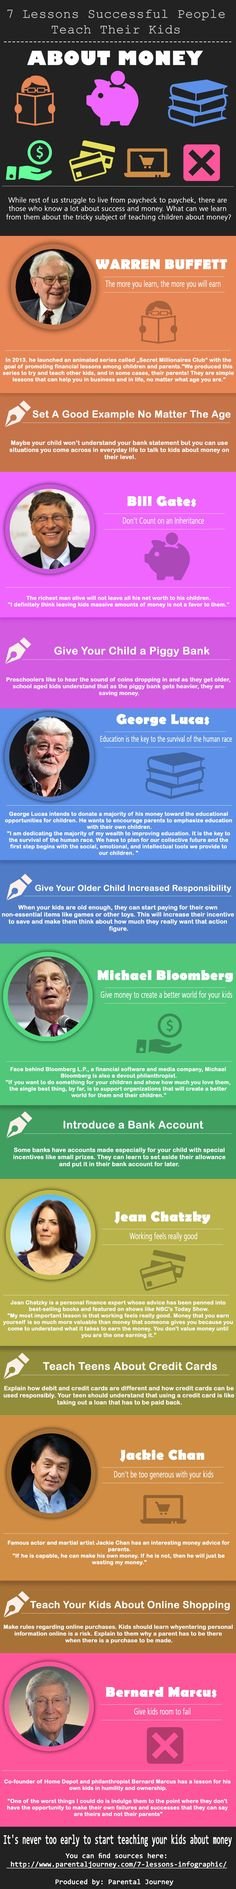 How Successful People Teach Their Kids About Money #Infographic #SuccessStories #Money